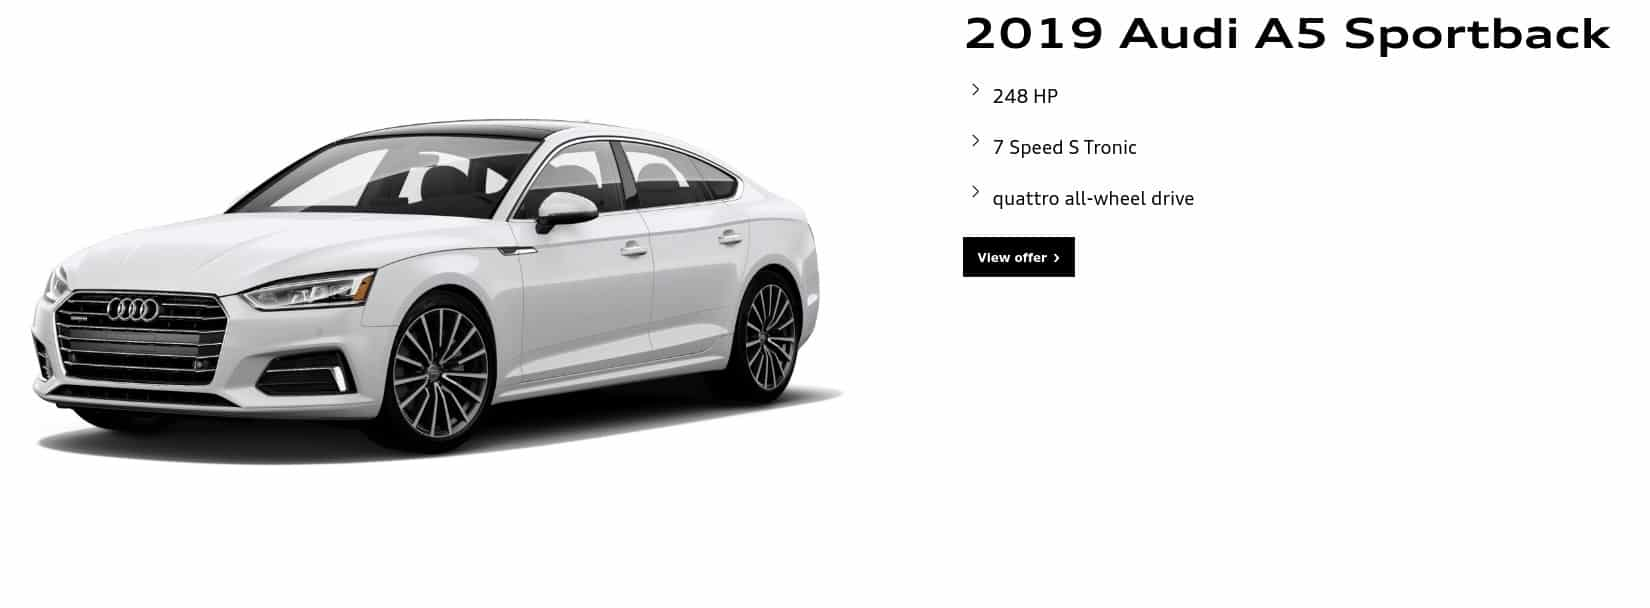 2019 Audi A5 is one of the best new car deals in Canada